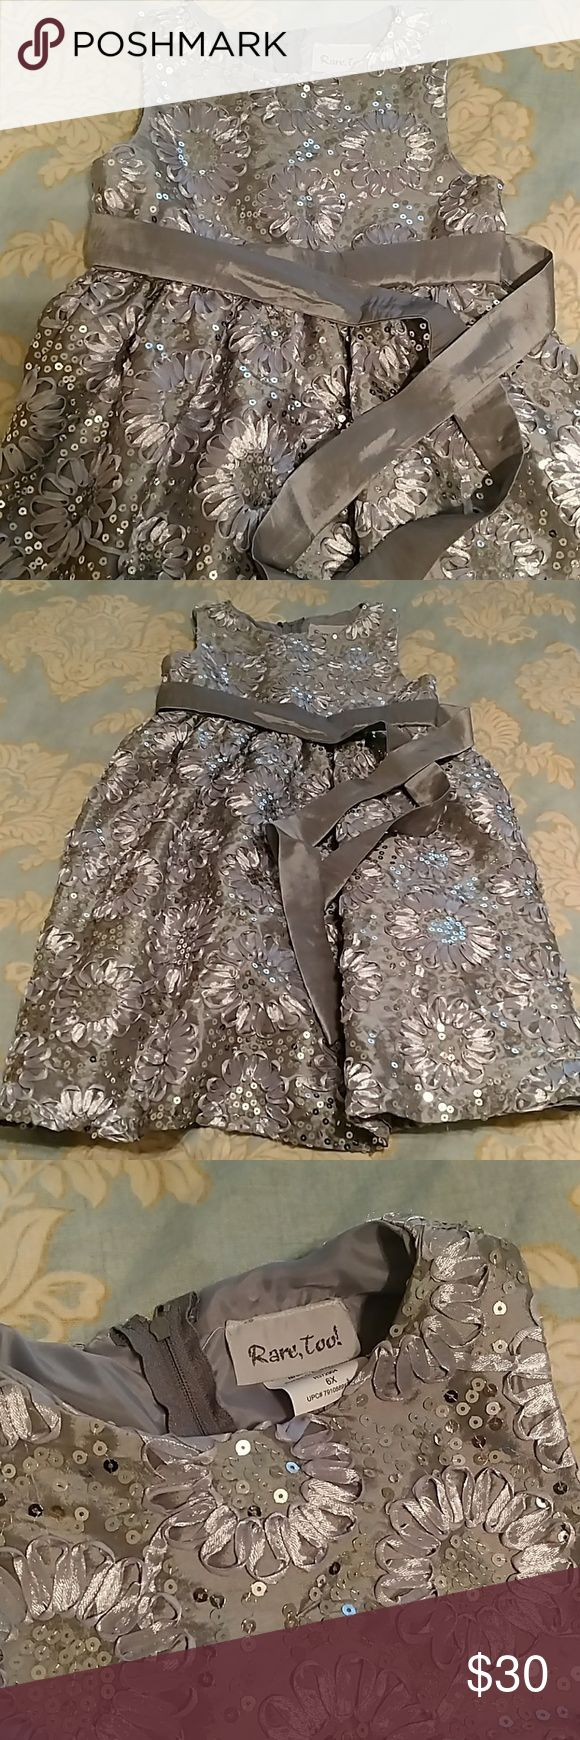 Girls Silver Sequined Dress Gorgeous flower pattern with sequin detail; worn once! Sleeveless and belted, size 6x Dillard's; Rare Too! Dresses Formal